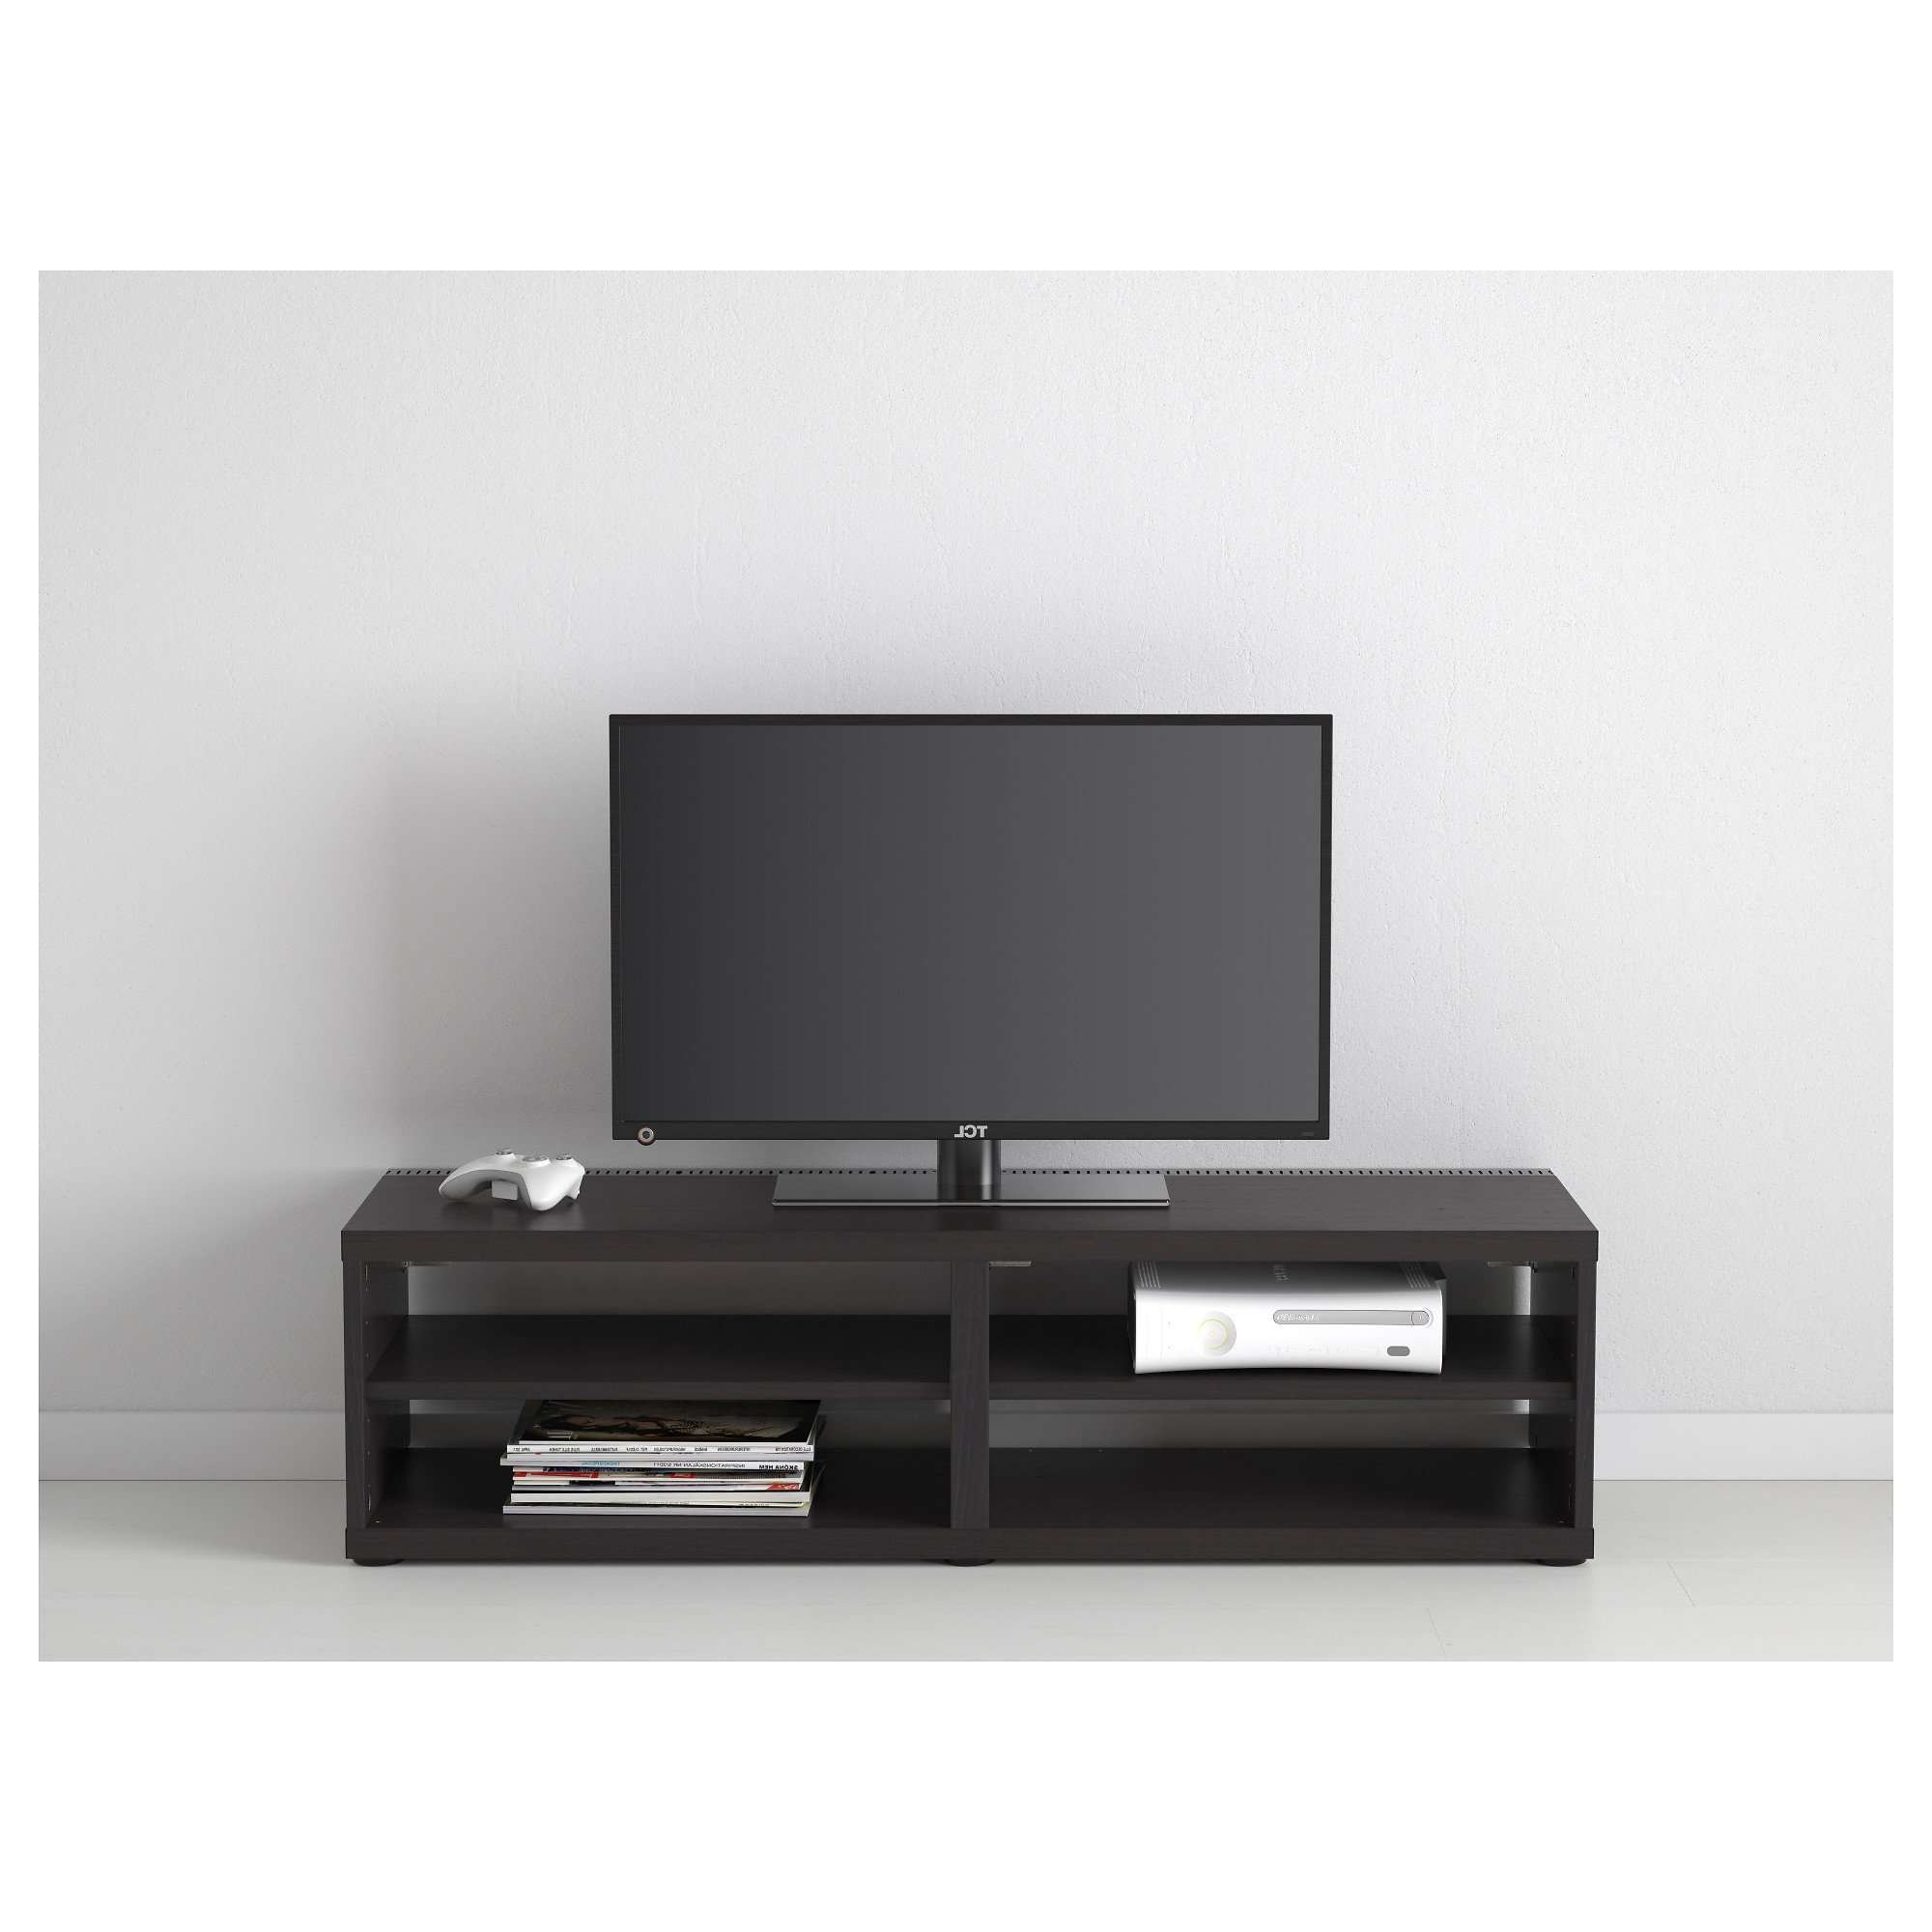 Ikea Besta Tv Stand With Long Black Wooden Tv Stand Having Wooden Pertaining To Long Black Tv Stands (View 6 of 15)